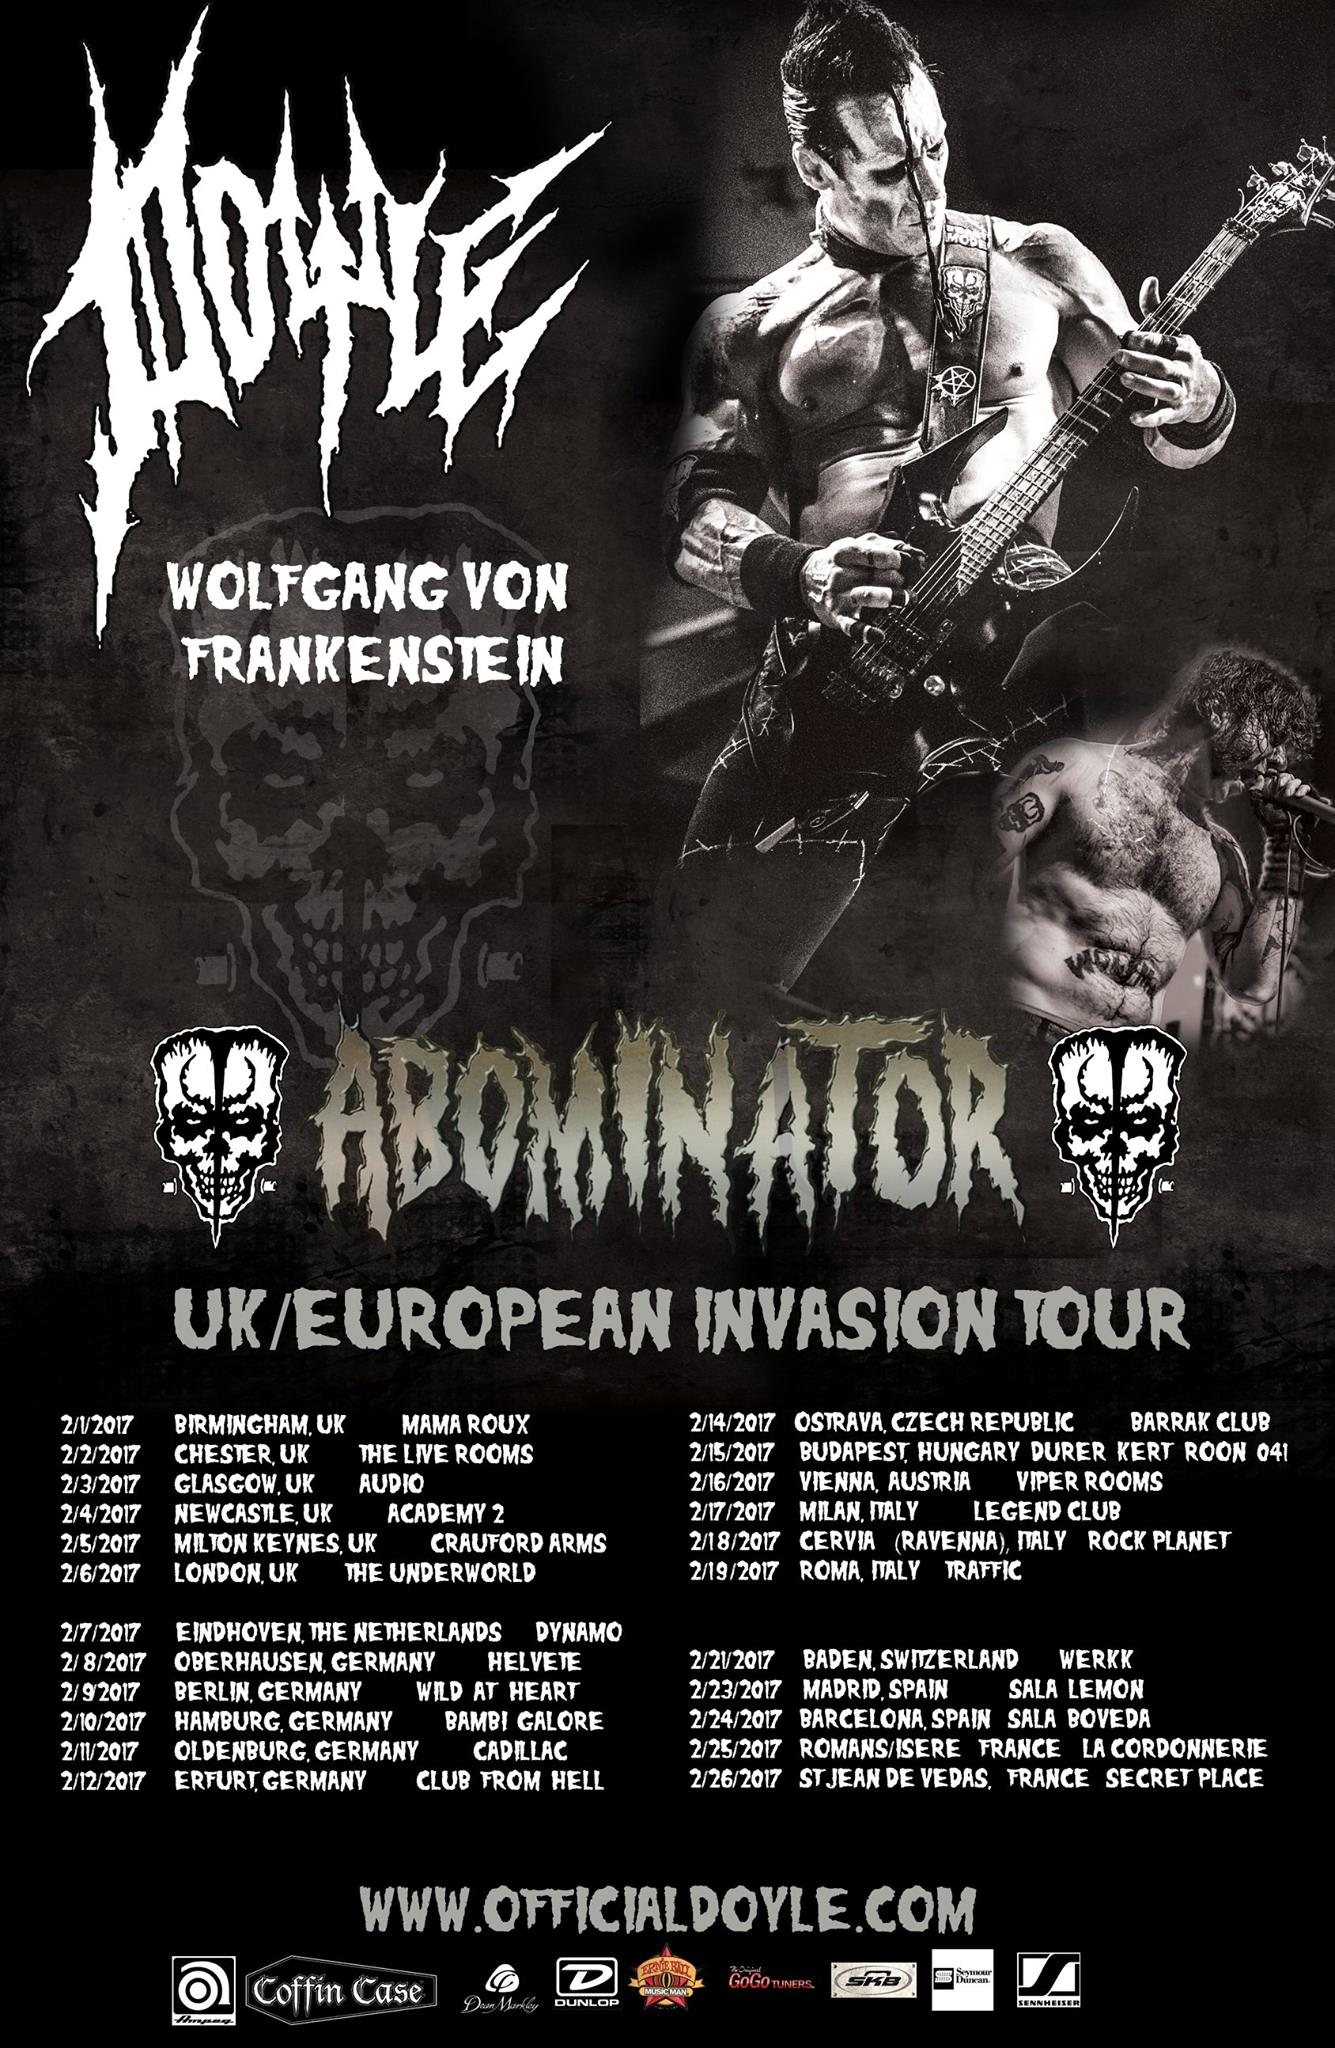 Tour-Support Doyle